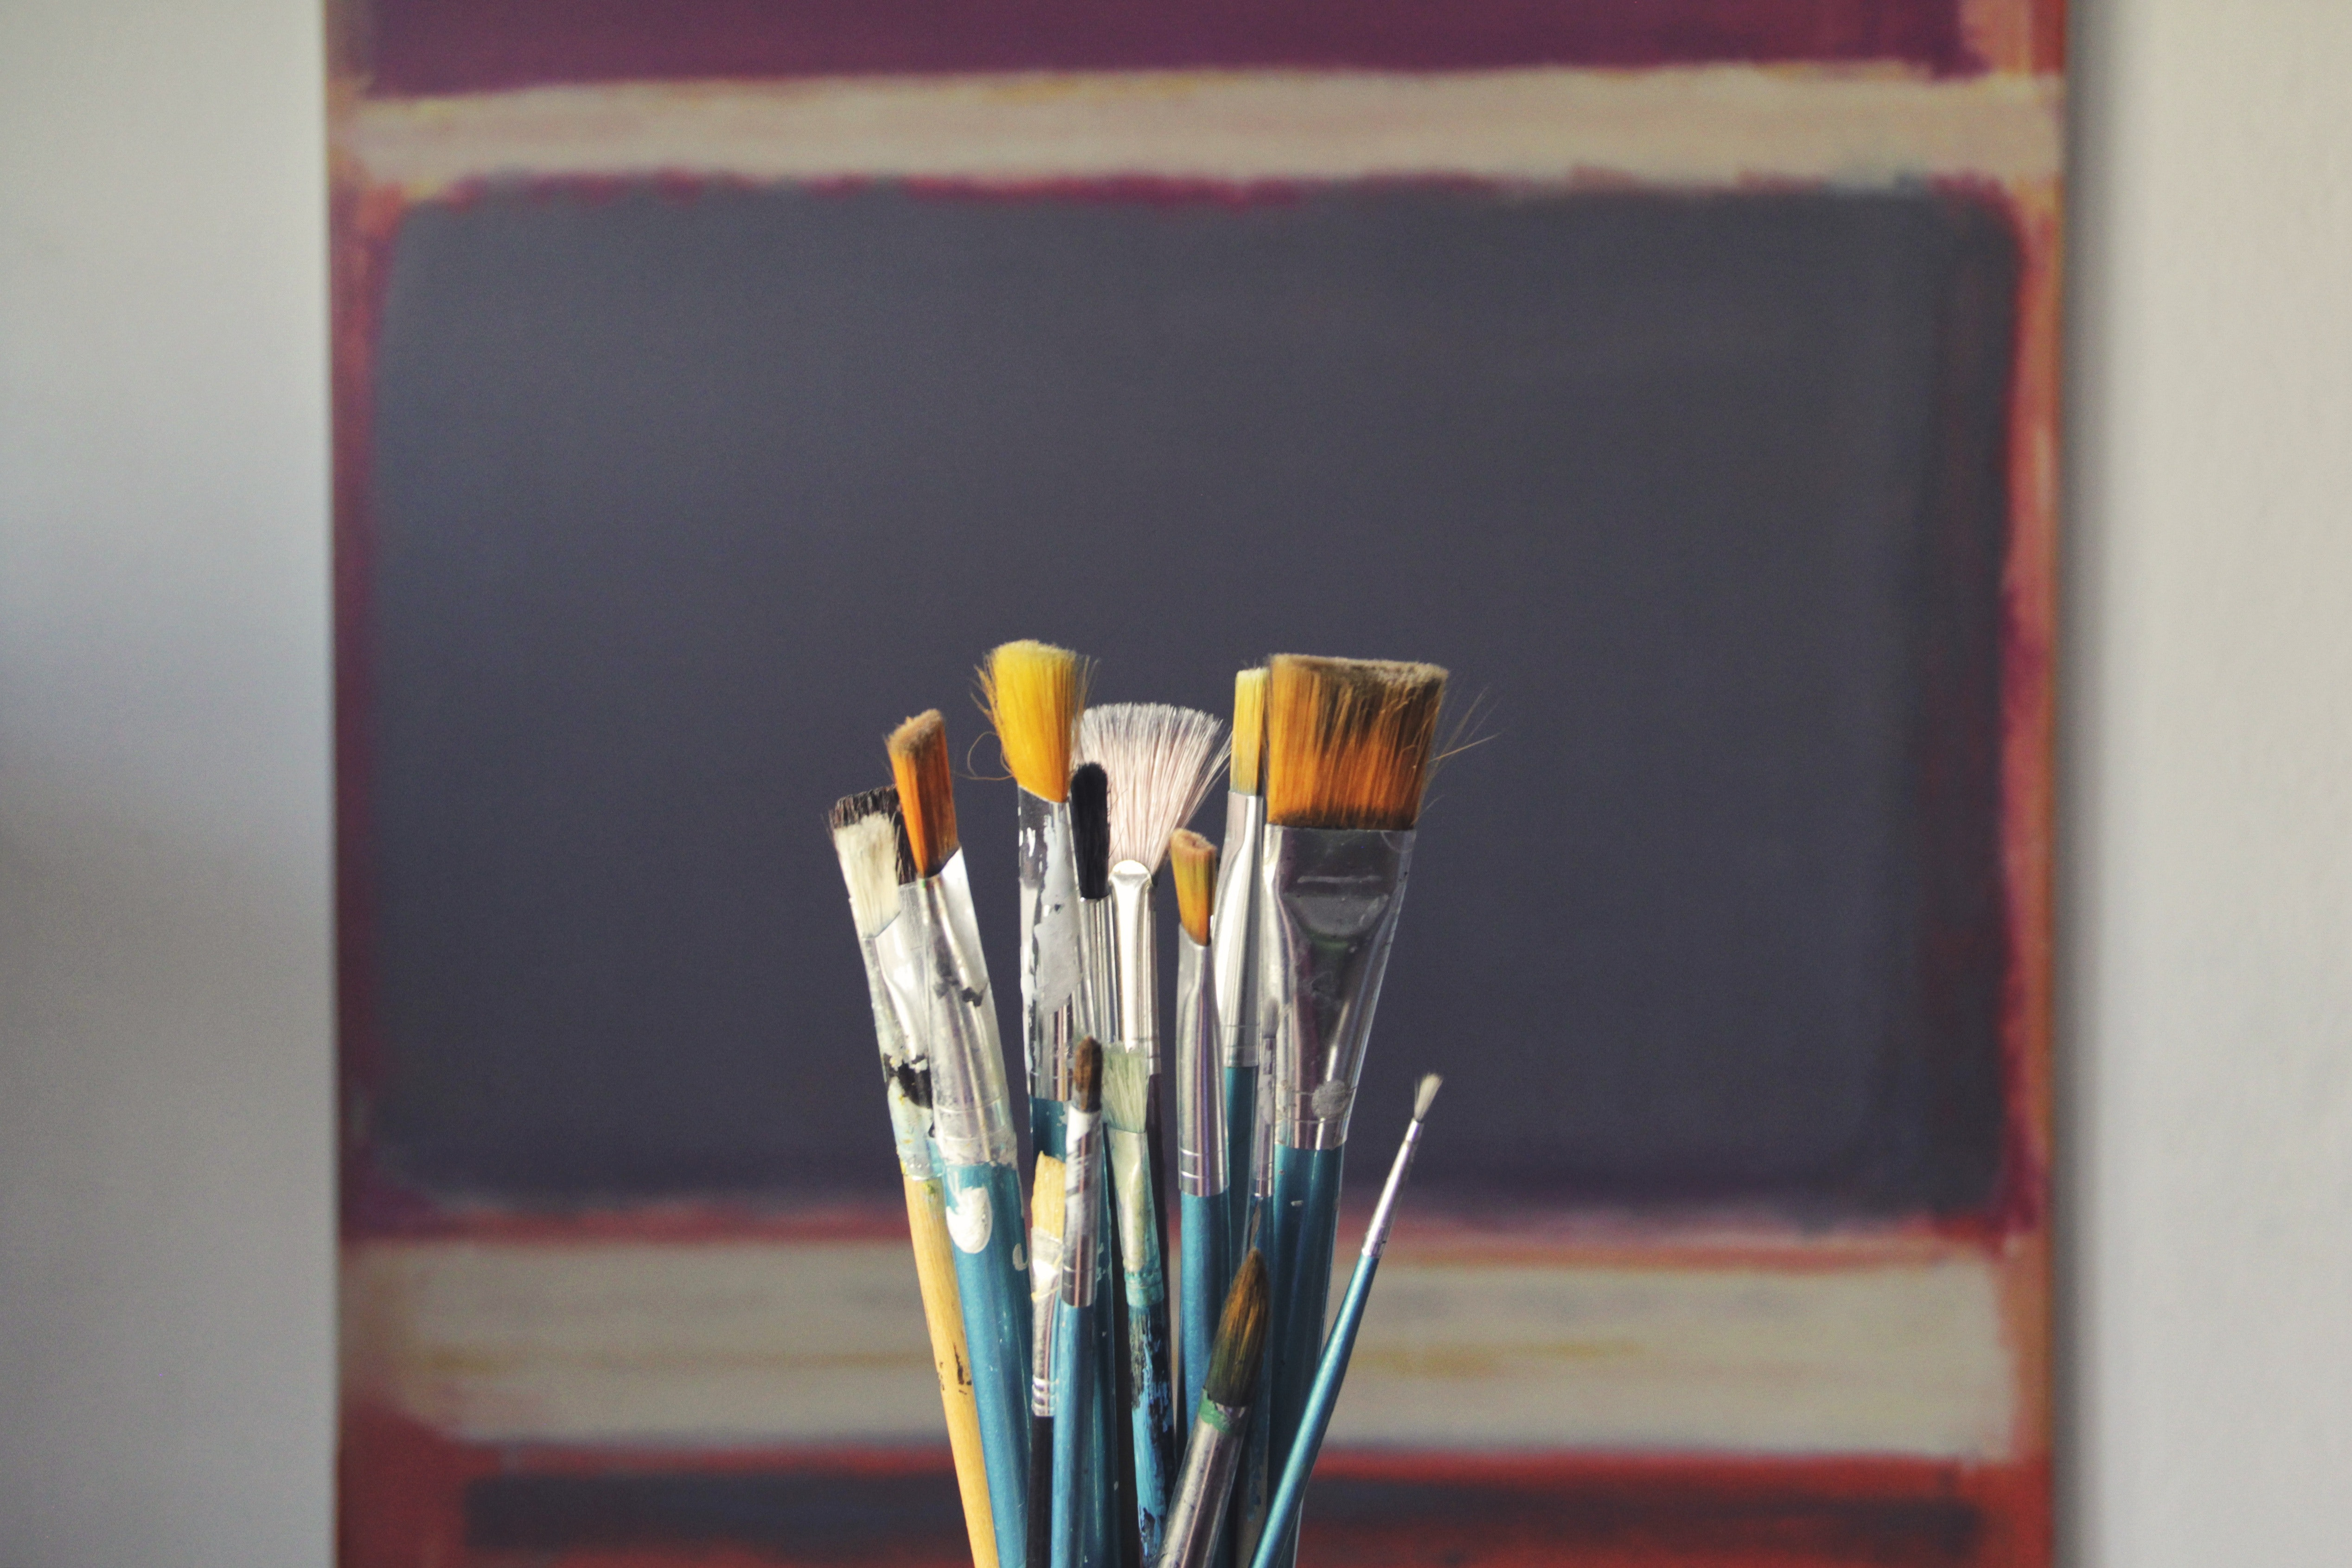 Top of the Line Paint and Sip Studio in Booming Location